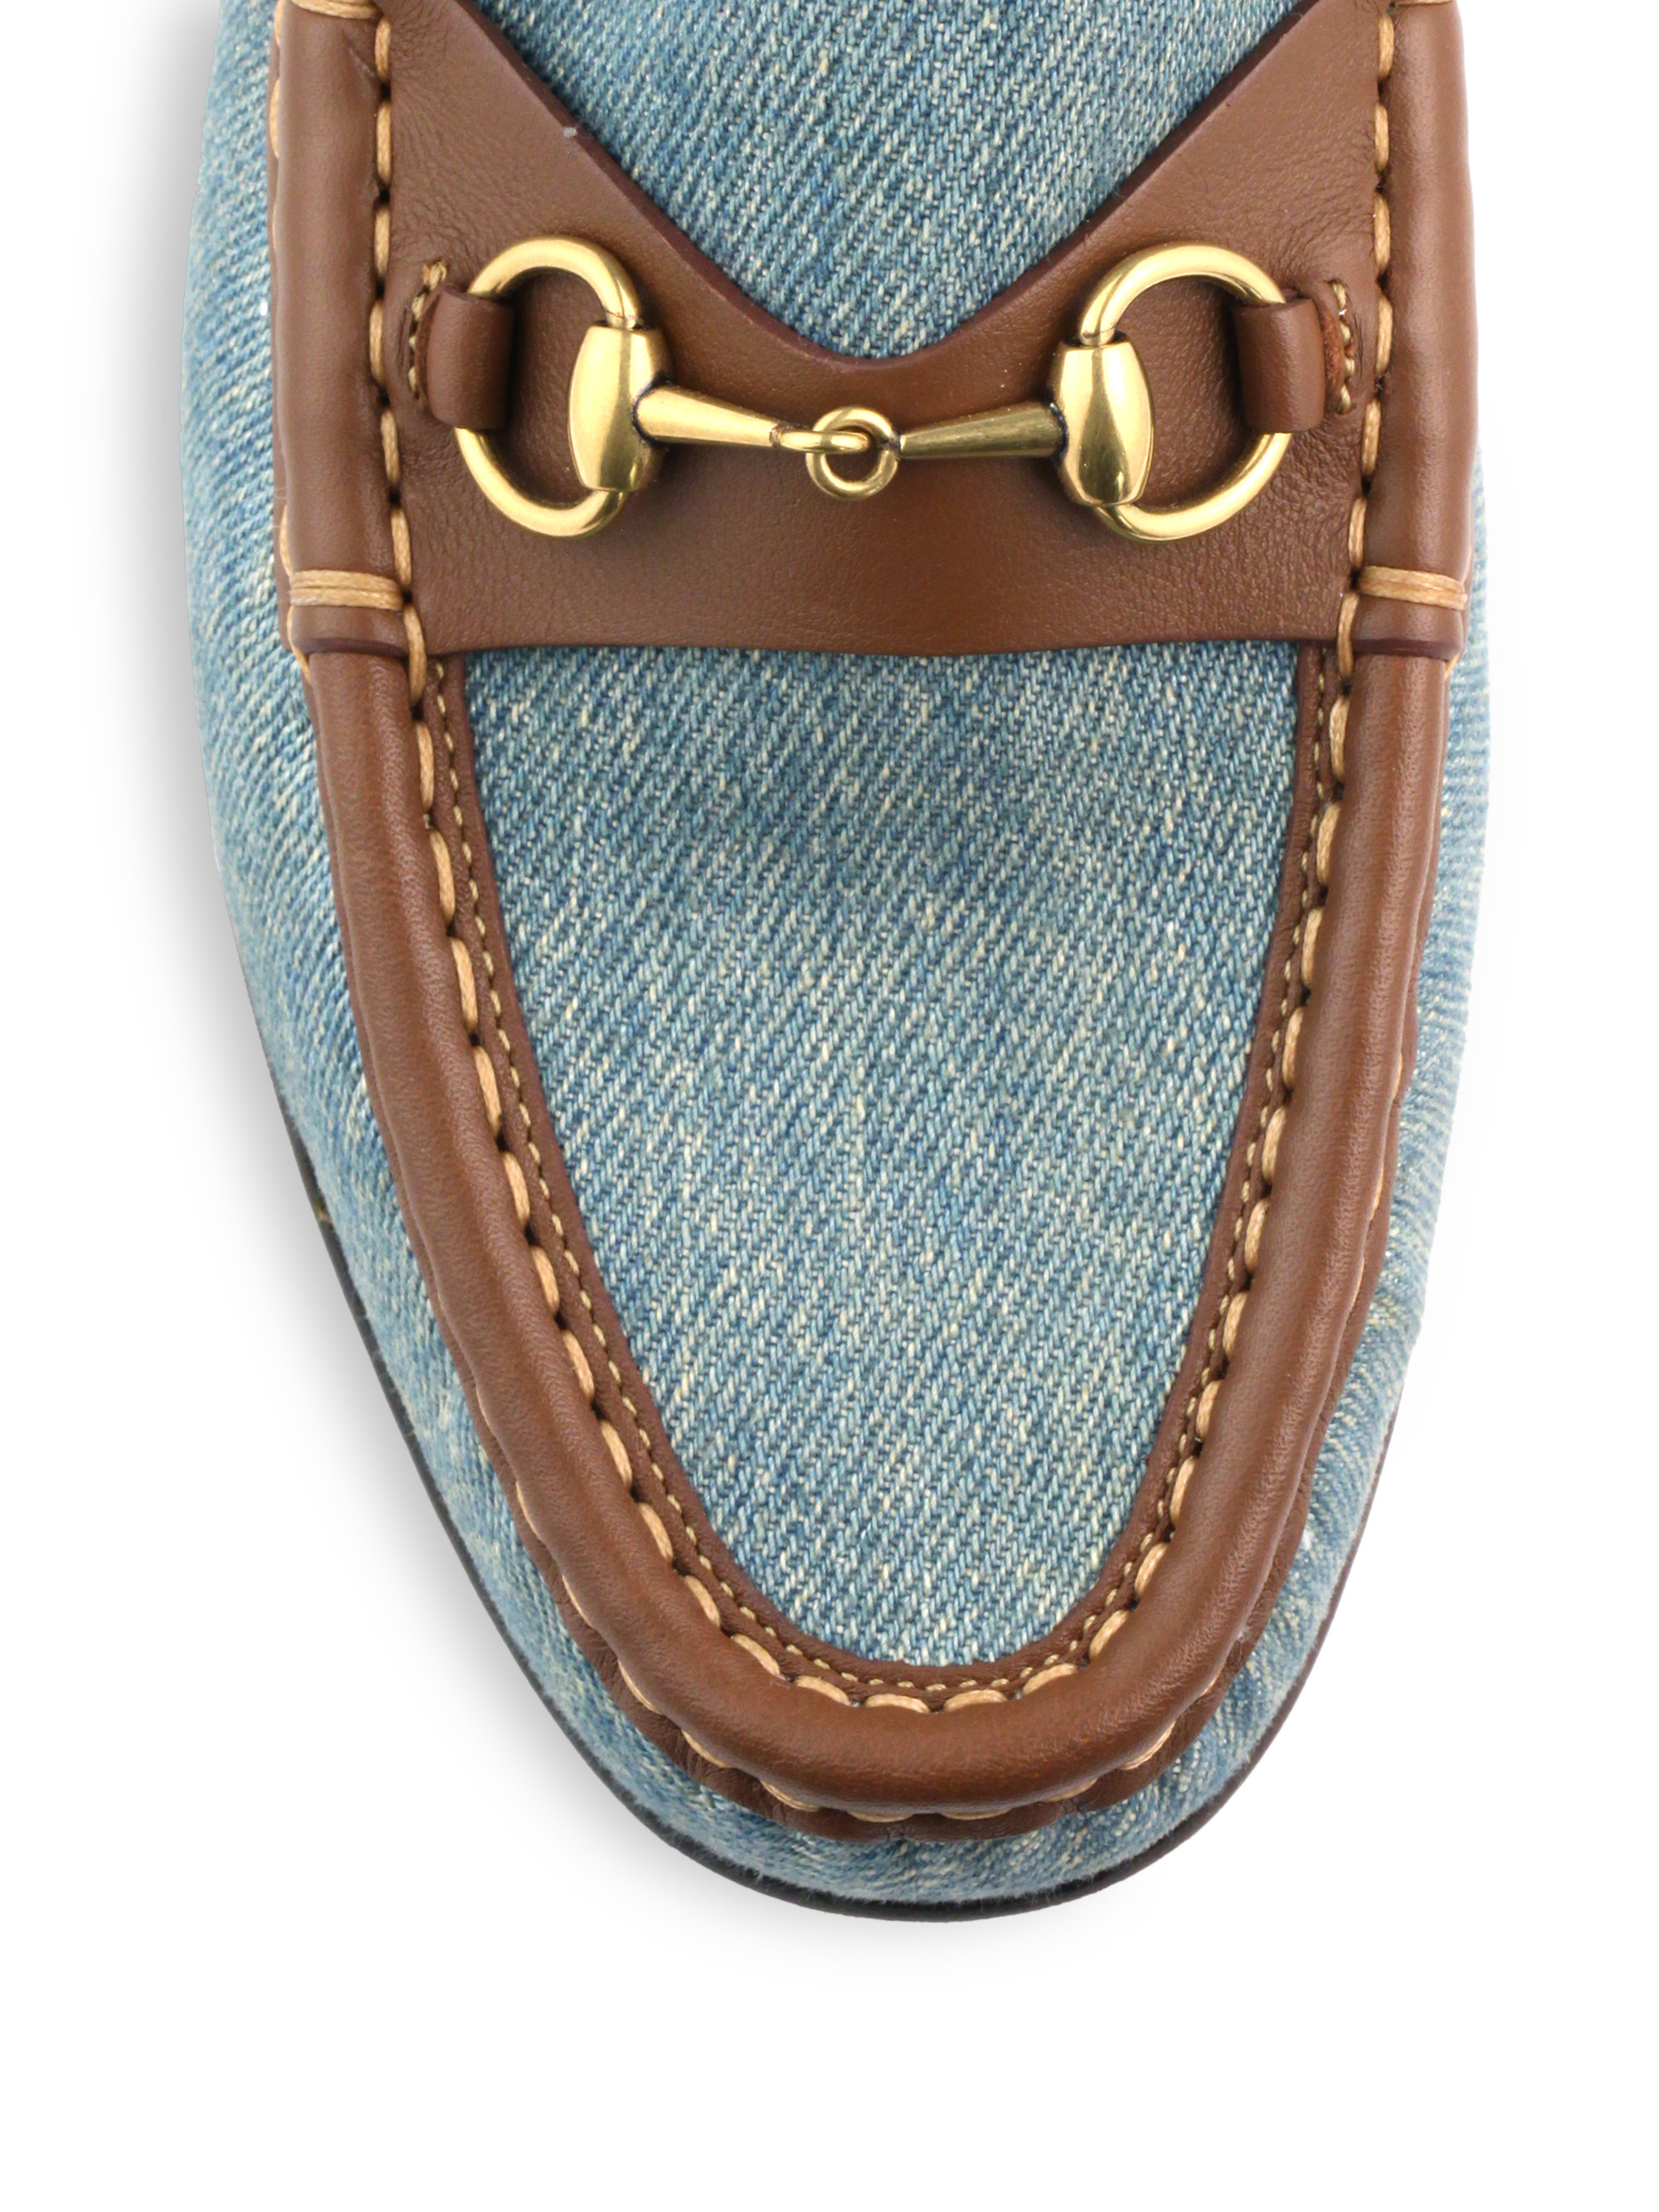 dbf807ce511 Lyst - Gucci Frame Denim Leather Horsebit Moccasin Loafers in Blue